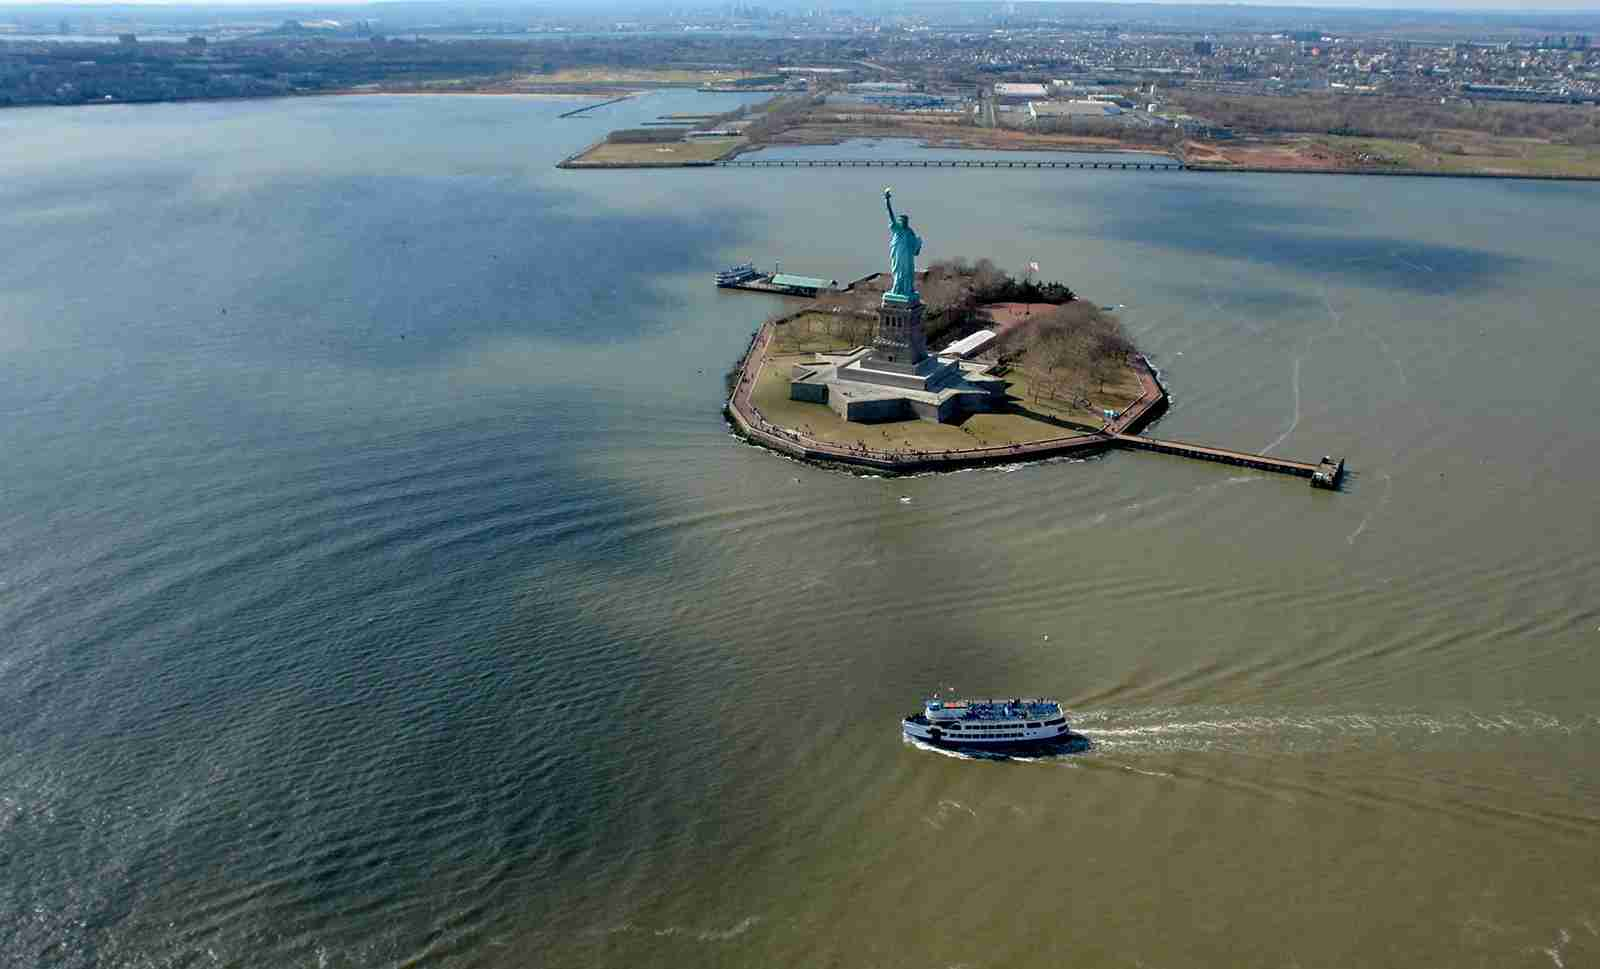 A cruise sailing past the Statue of Liberty. (Photo by steinphoto/Getty Images)